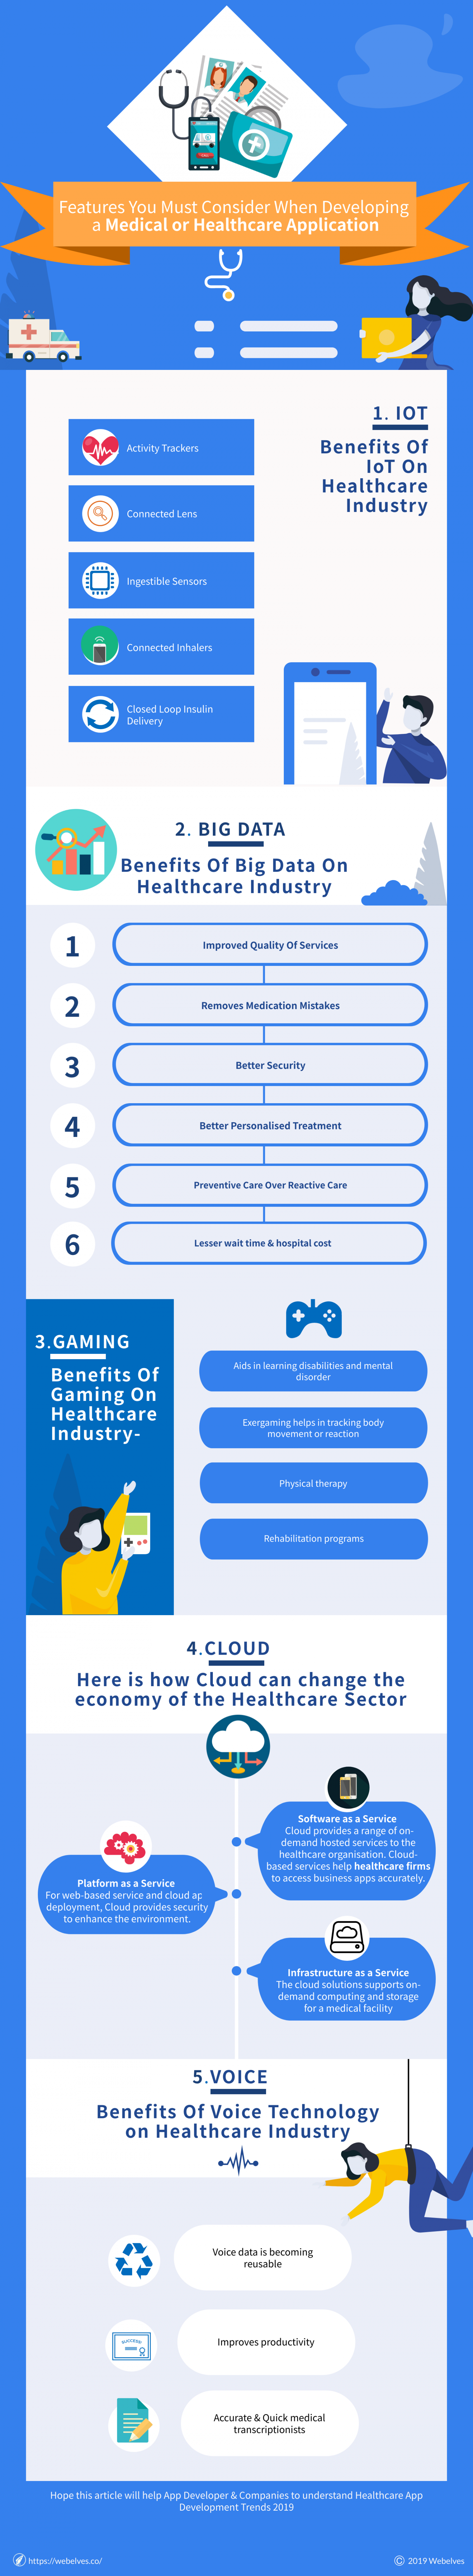 5 Must-Have Features of a Healthcare Application Infographic